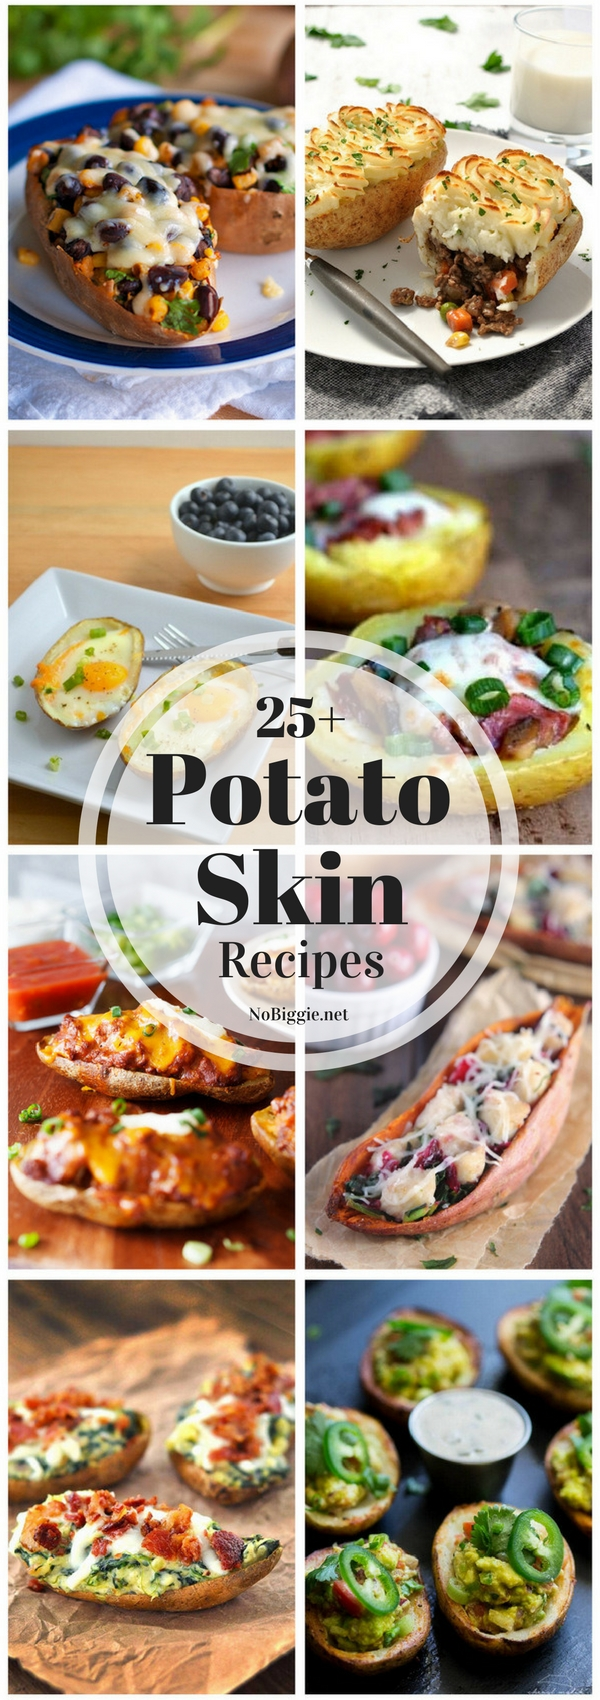 Potato skin recipes for all occasions, even breakfast! #potatoskinrecipes #potatoskins #potato #easyrecipes #appetizers